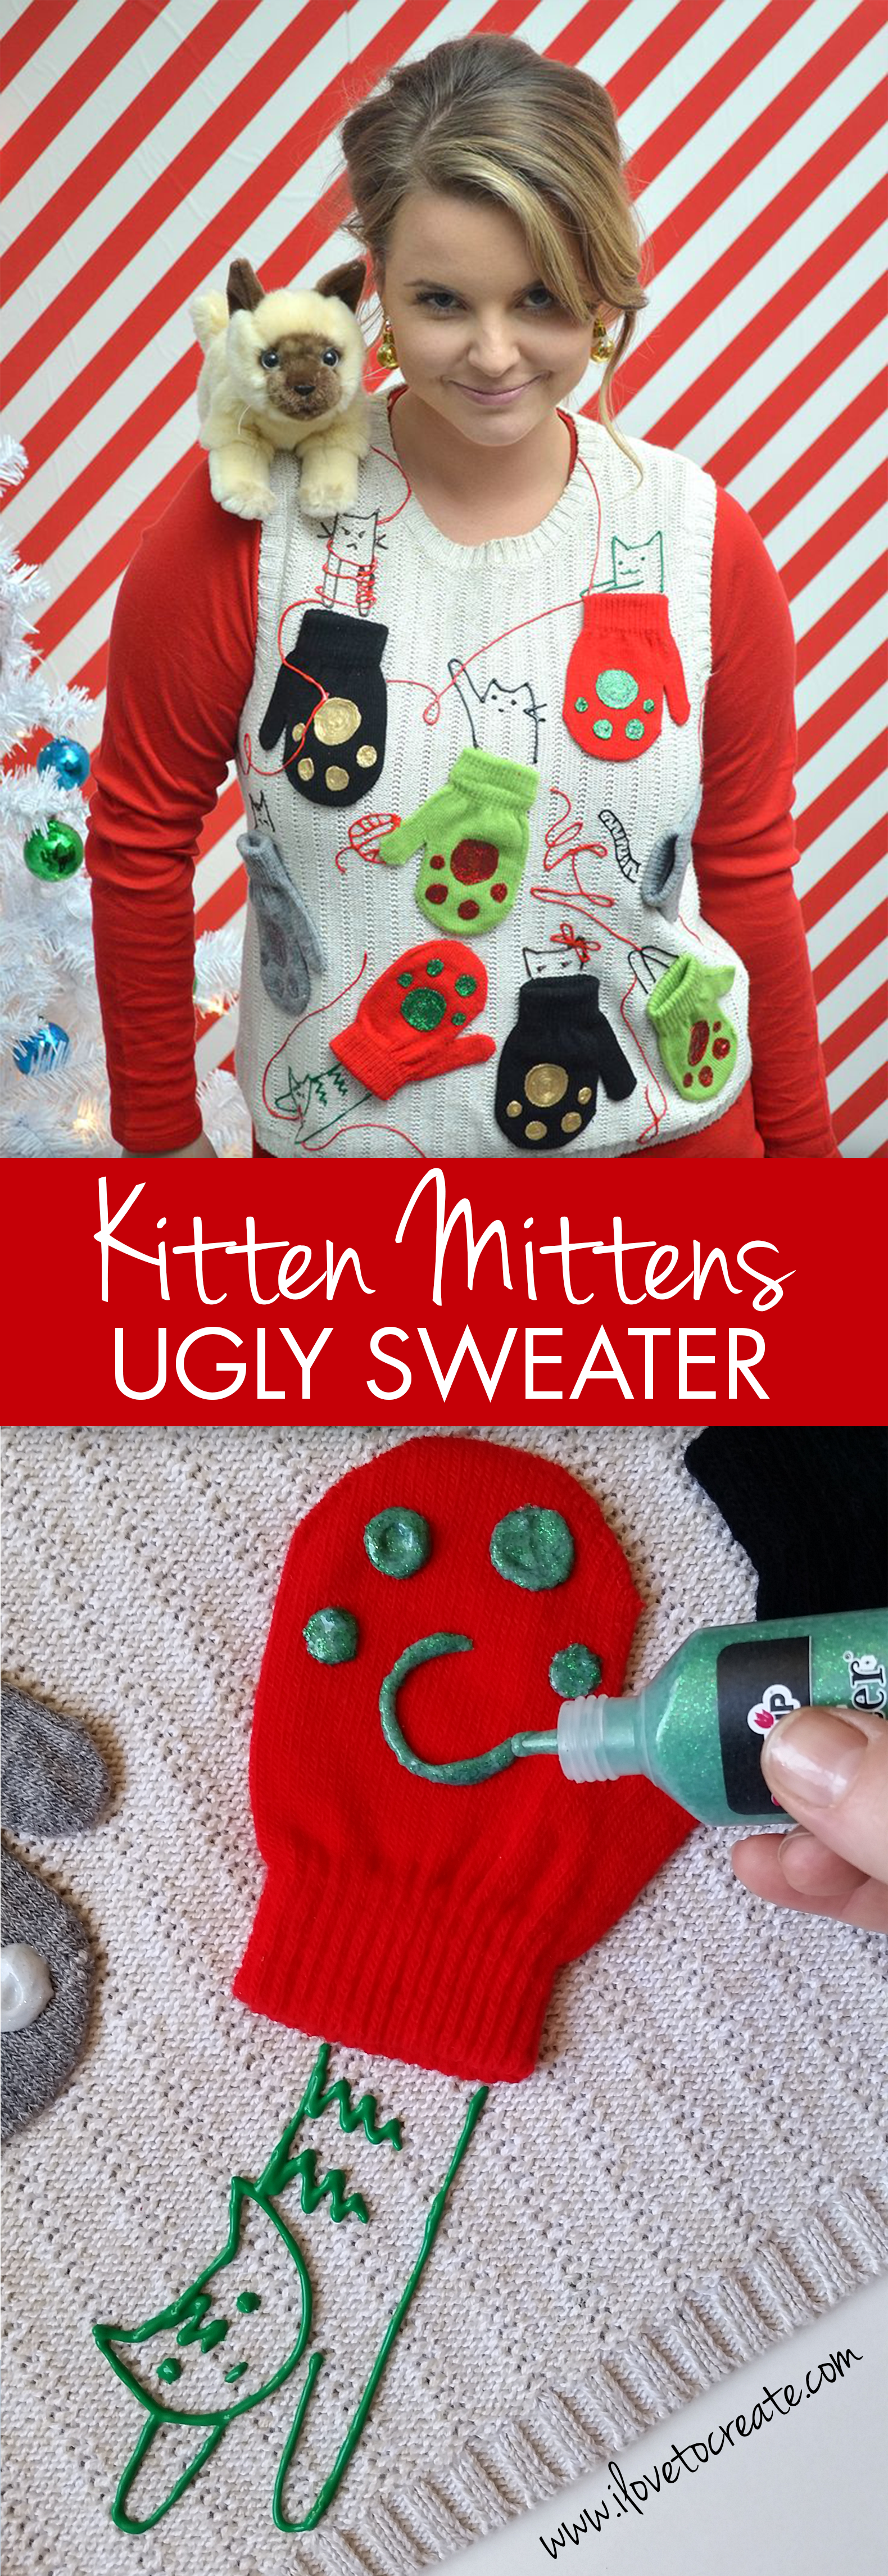 Kitten Christmas Sweater.Pin On Ugly Christmas Sweater Ideas